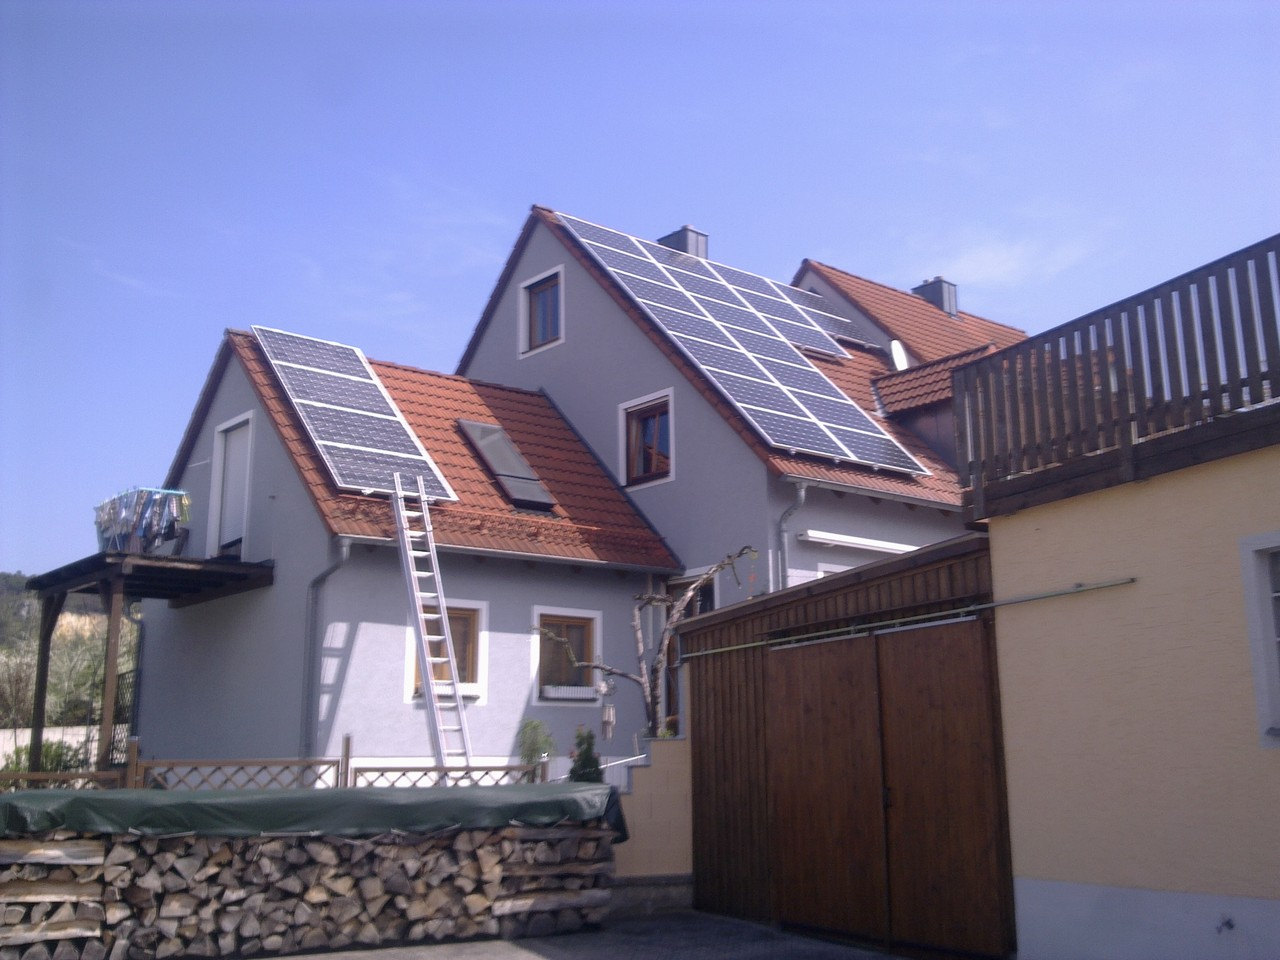 5,5 kWp Photovoltaikanlage in 93077 Bad Abbach